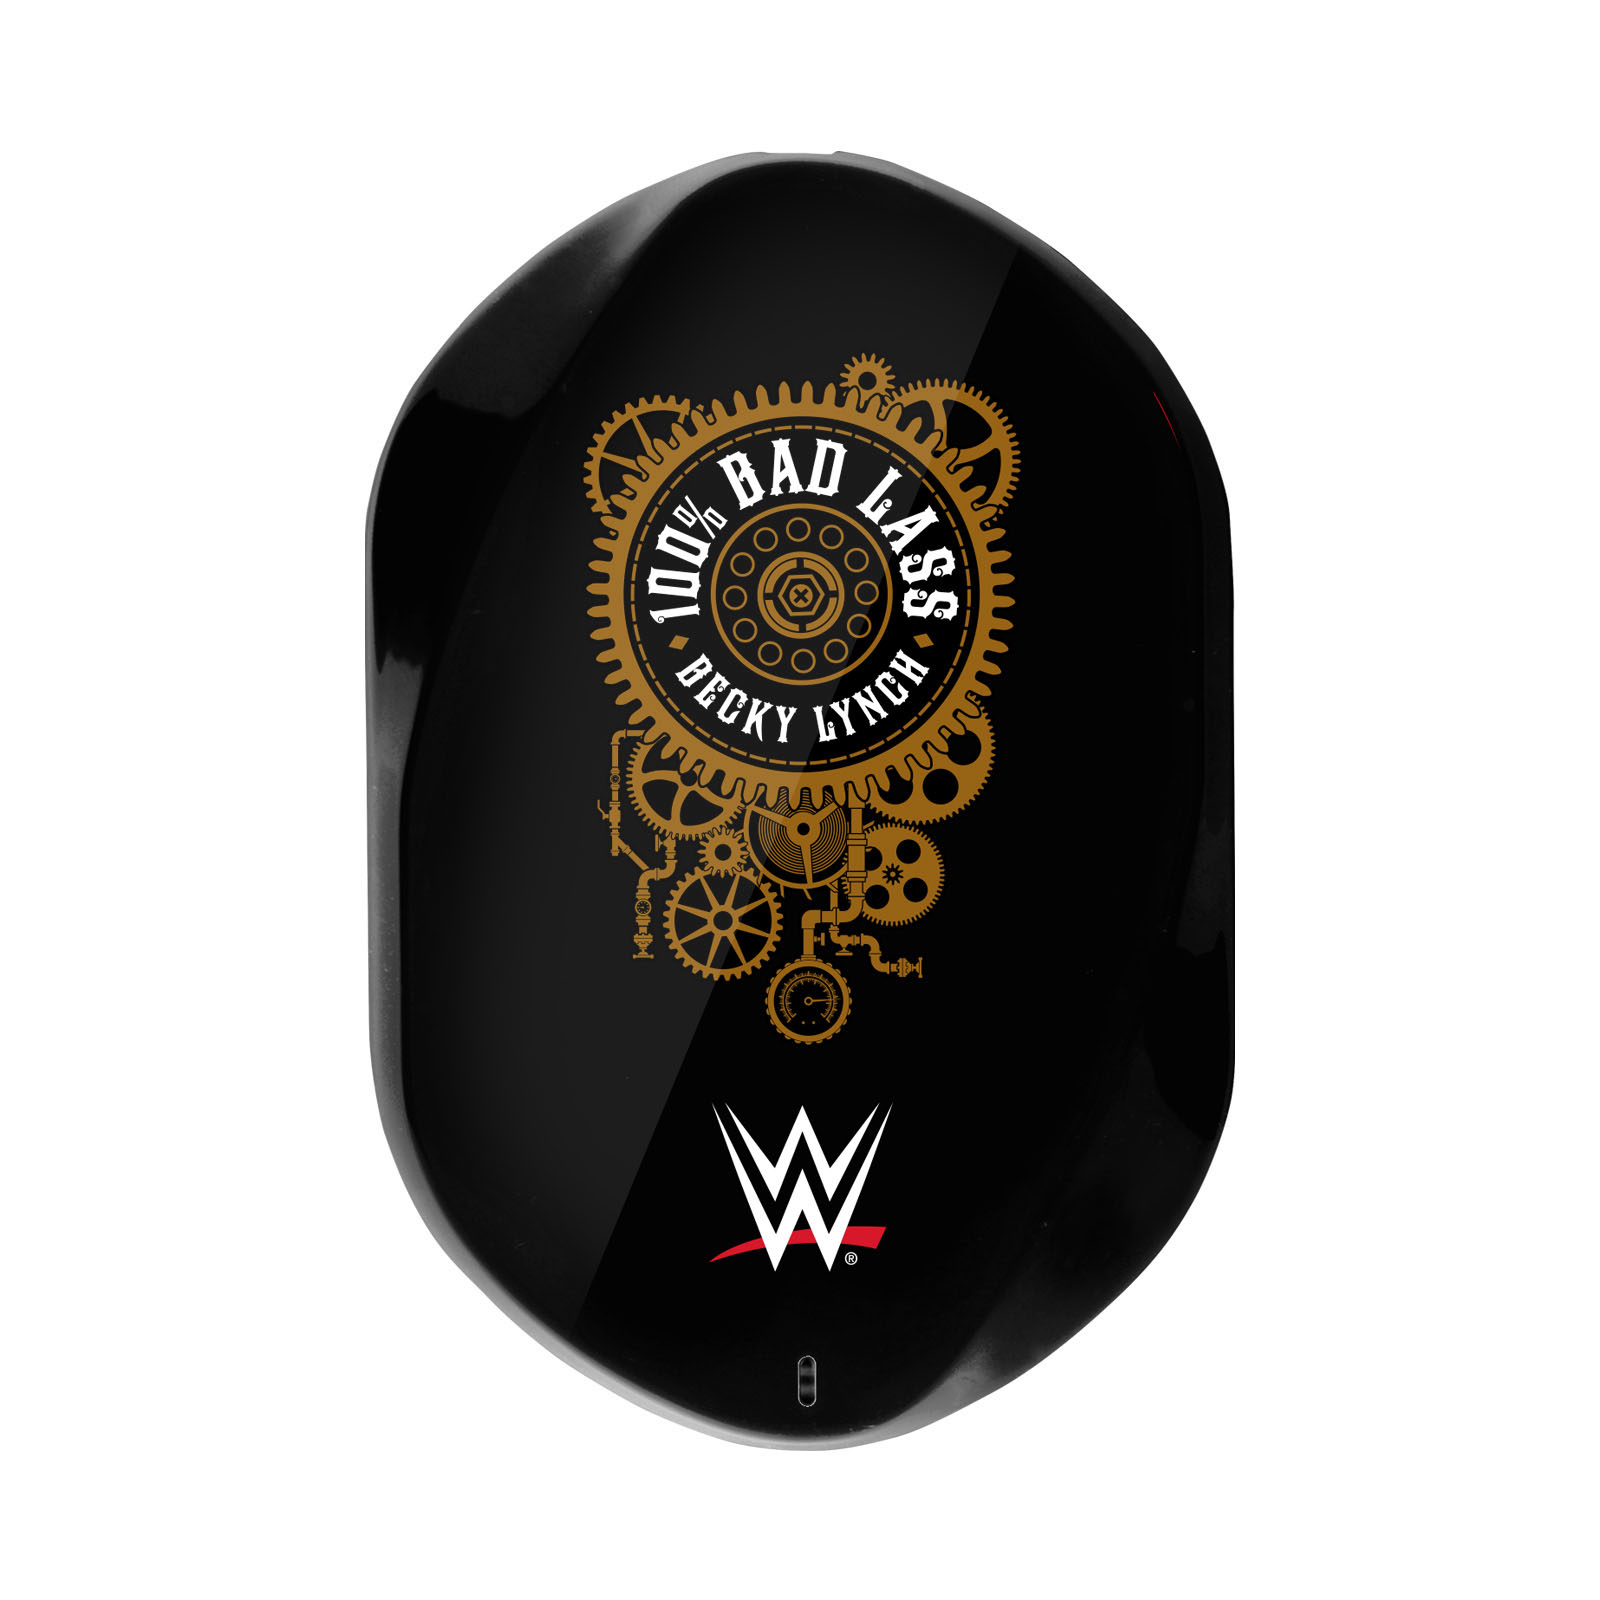 OFFICIAL-WWE-SUPERSTARS-GRAPHIC-BLACK-QI-FAST-WIRELESS-CHARGER thumbnail 5